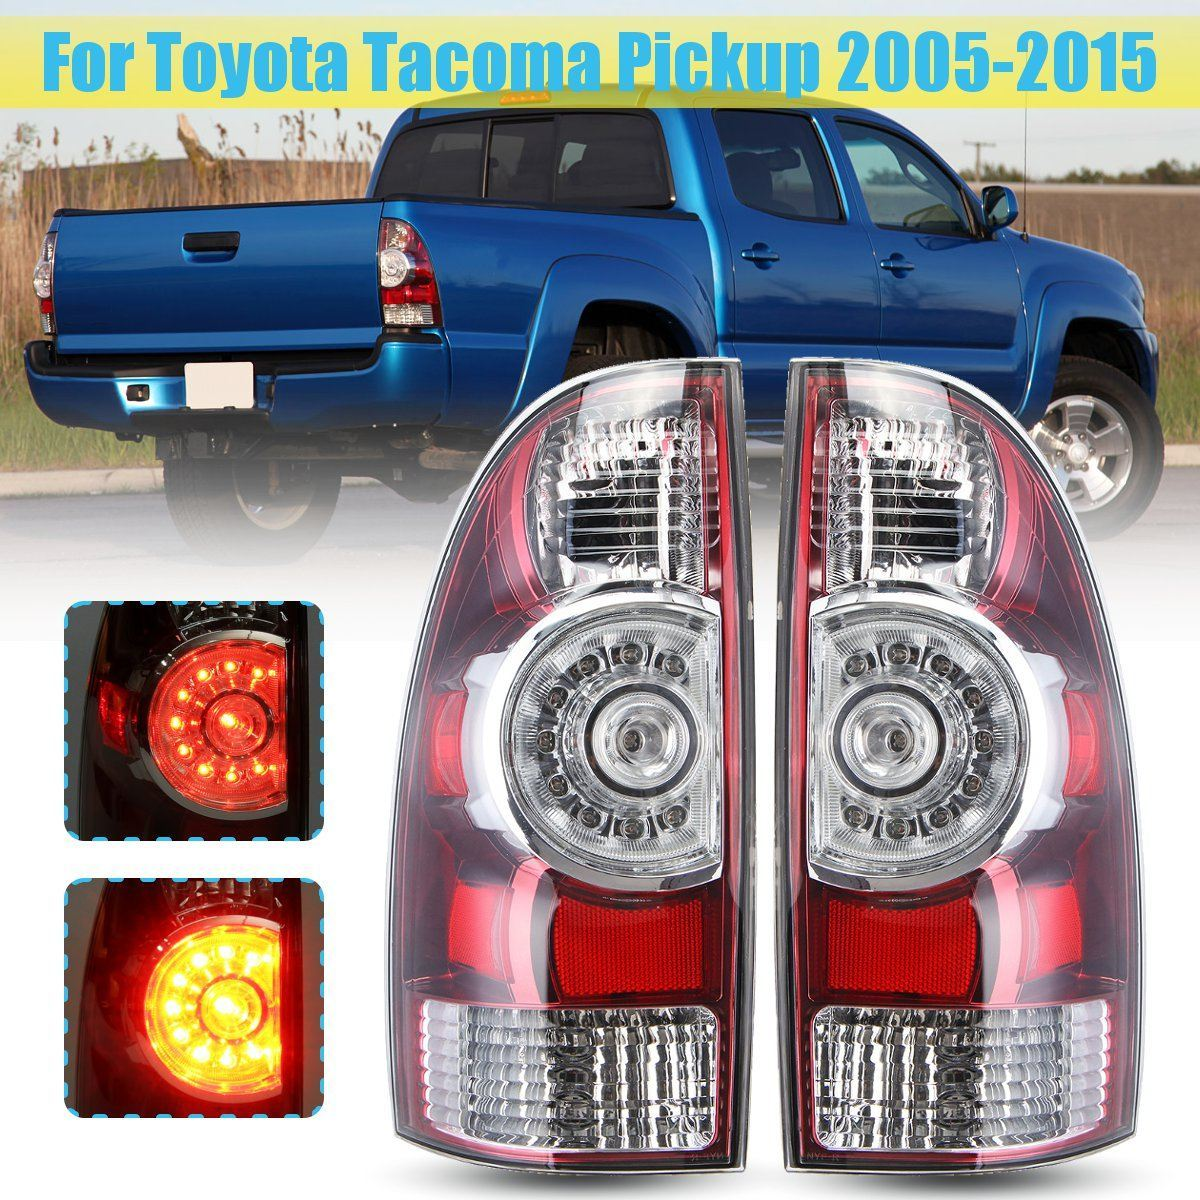 hight resolution of china for toyota tacoma pickup 2005 2015 left right tail light lamp with wire harness led rear tail light brake lamp china tail light tail light for